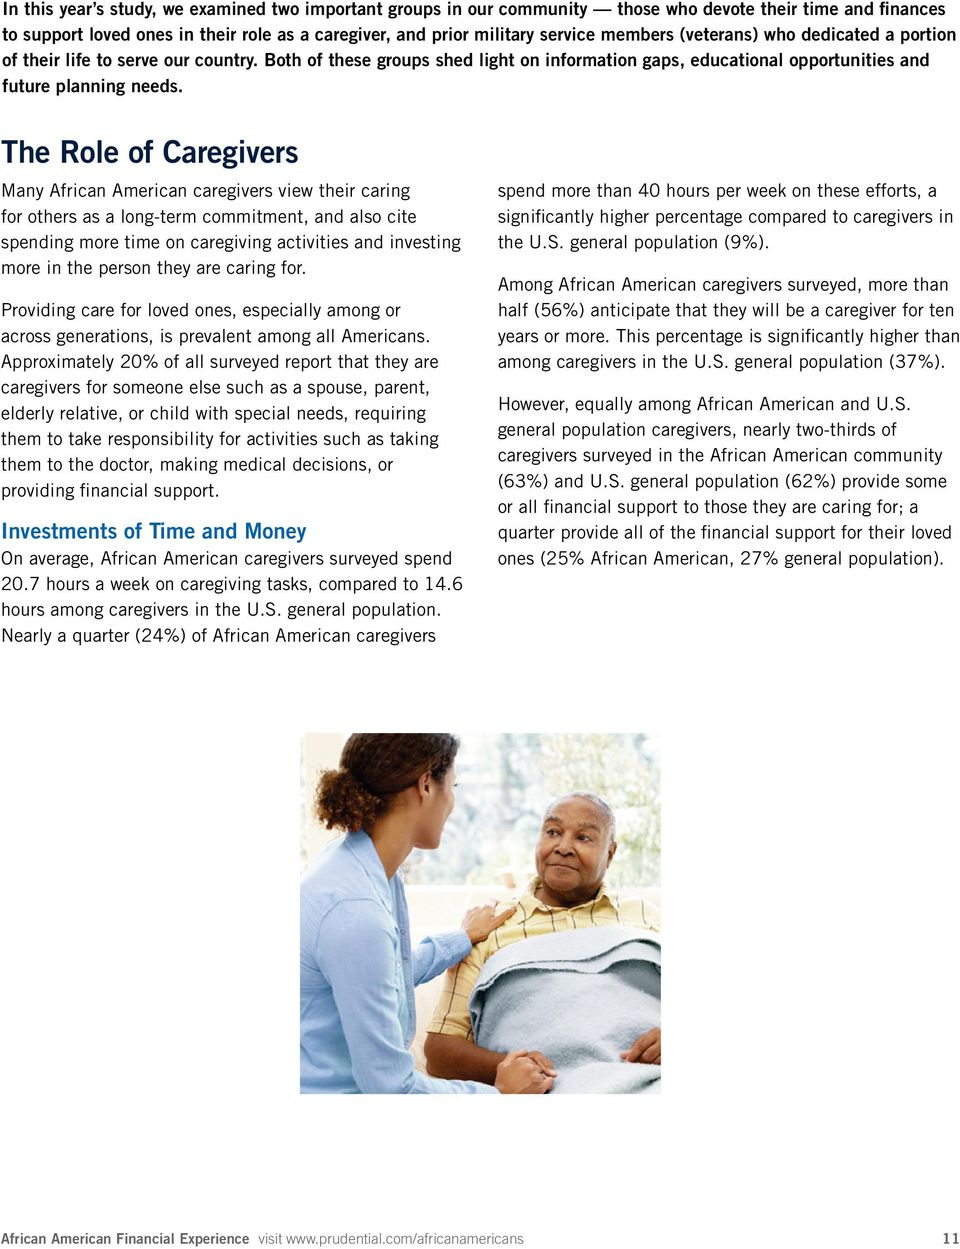 The Role of Caregivers Many African American caregivers view their caring for others as a long-term commitment, and also cite spending more time on caregiving activities and investing more in the